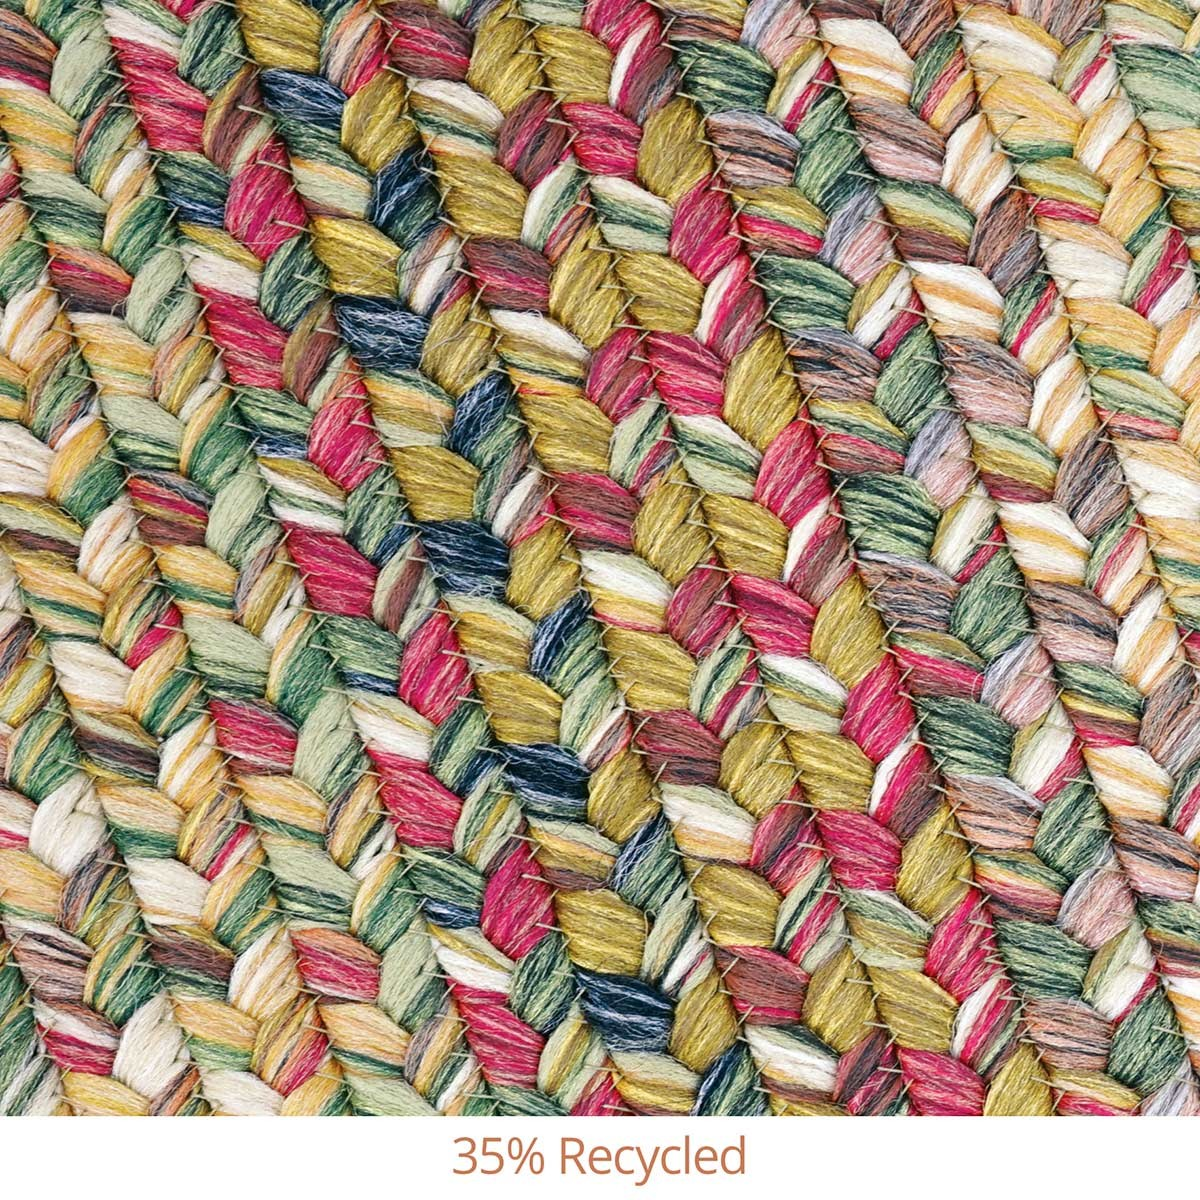 Buy Rainforest Multi Color Ultra Durable Braided Rugs  : rainforest multi color ultra durable braided rugs 70e from www.homespice.com size 1200 x 1200 jpeg 581kB